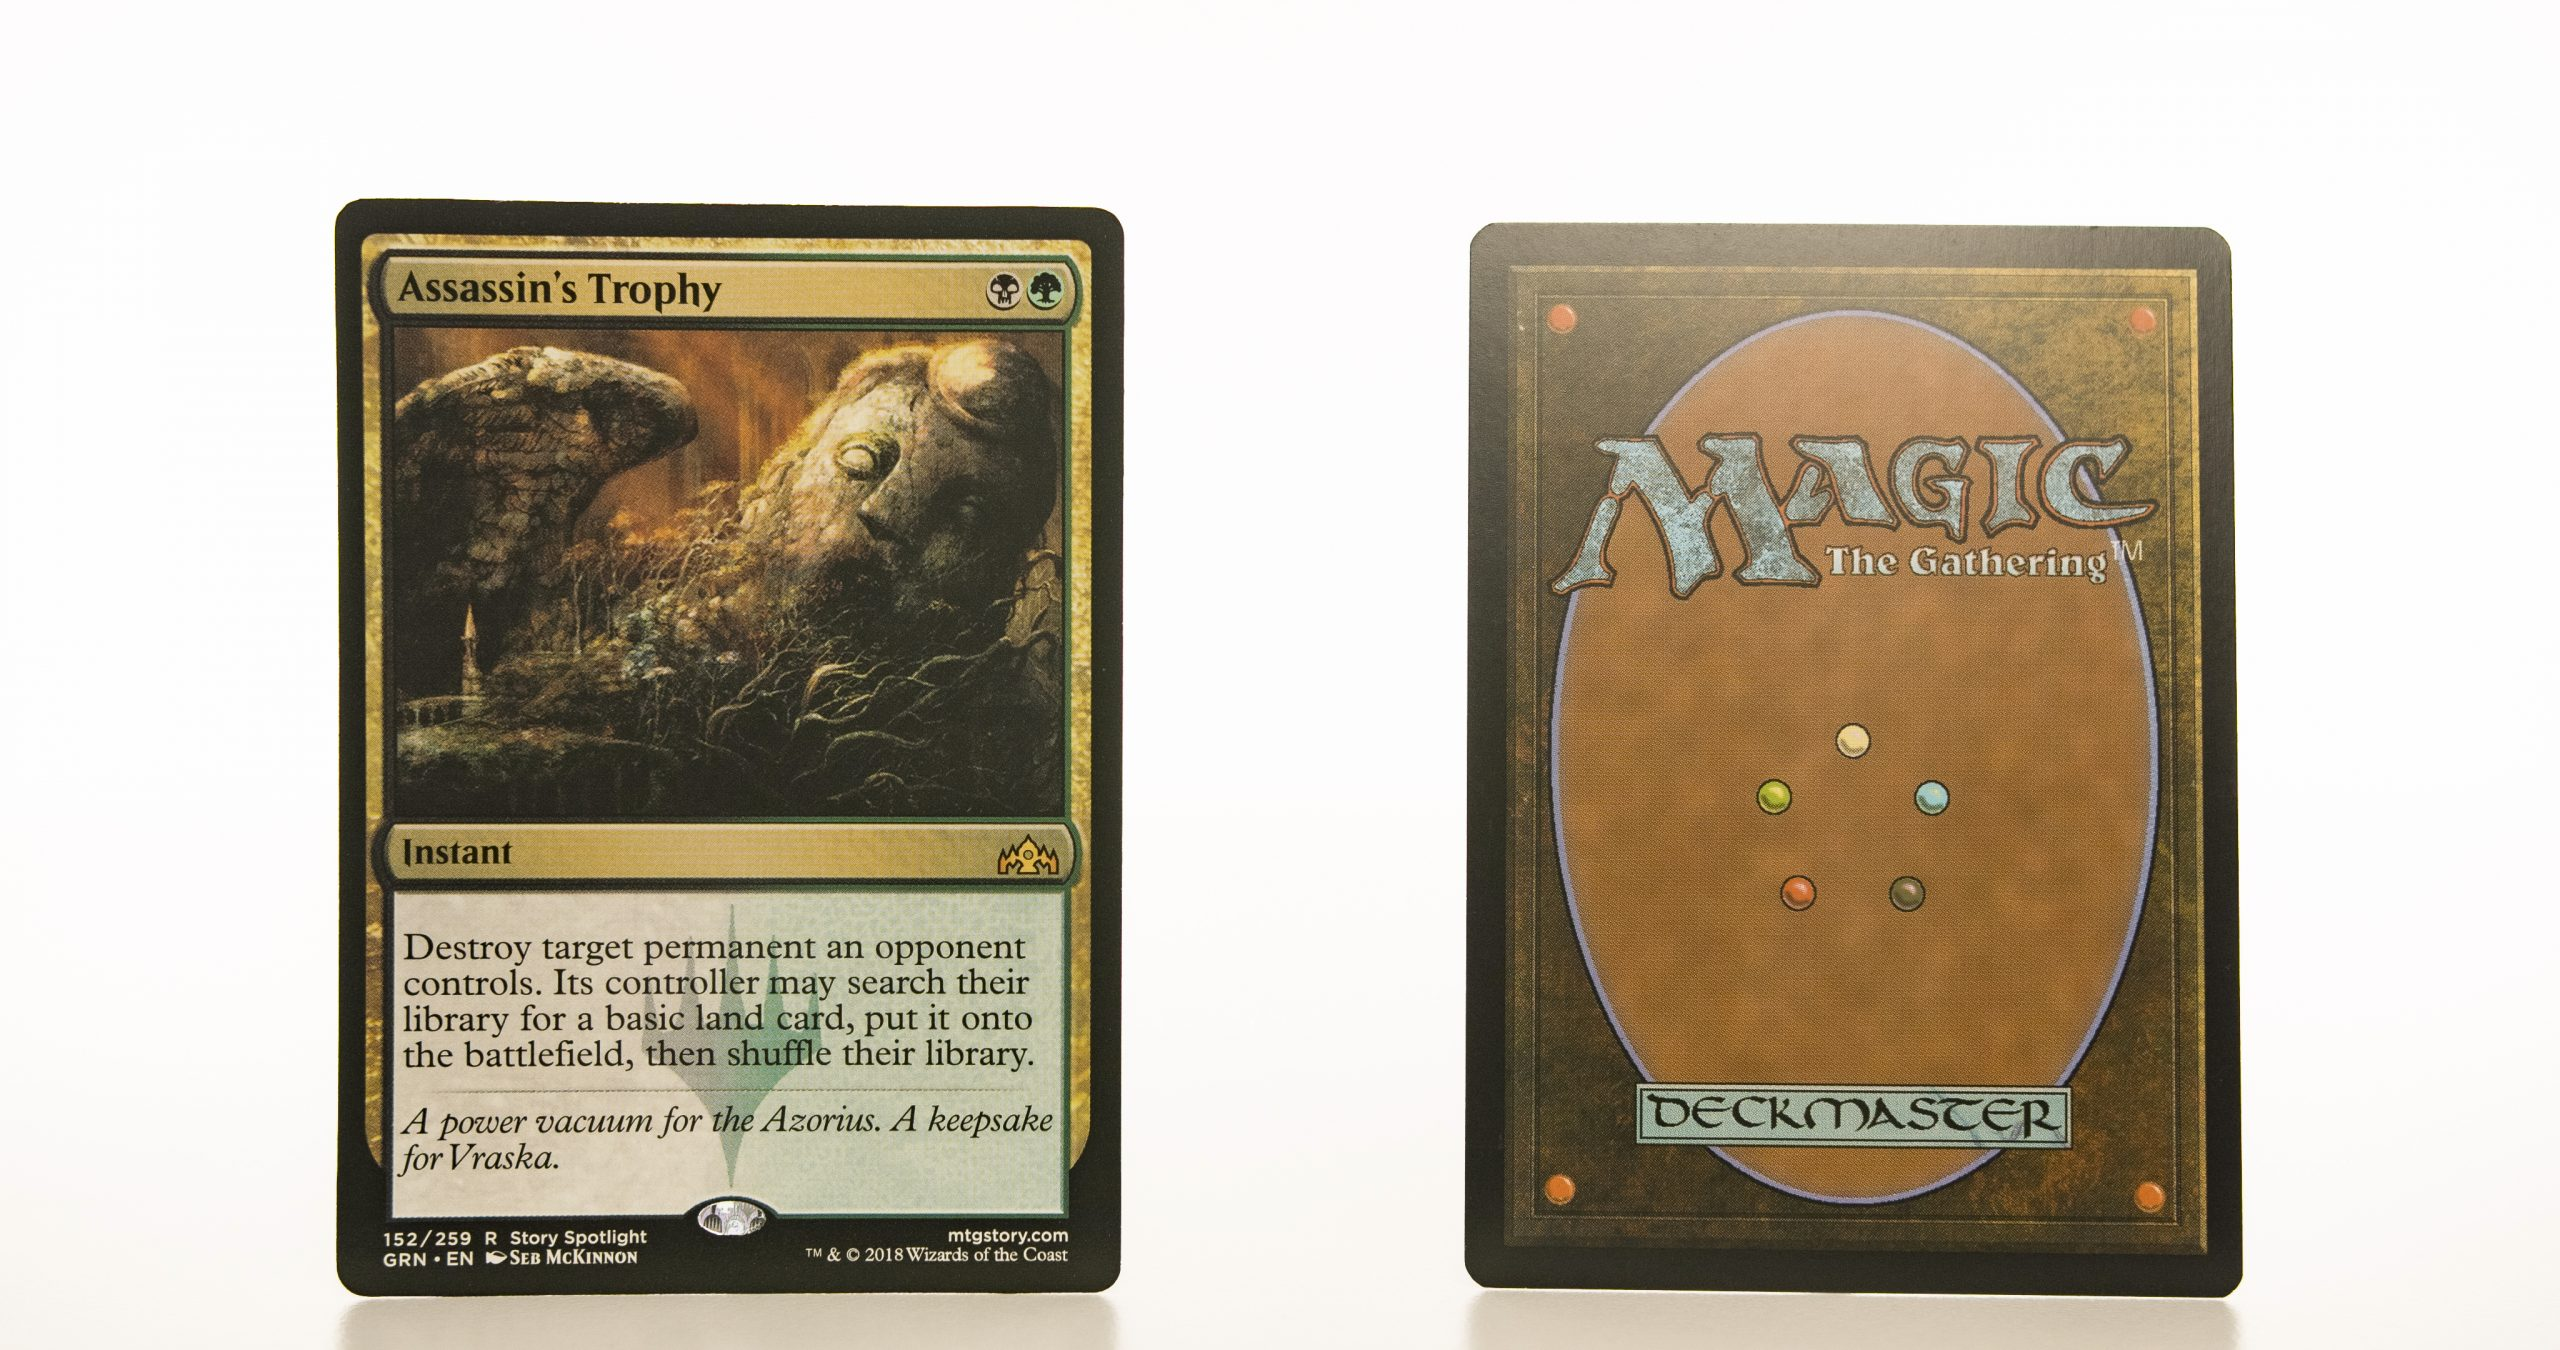 assassin's trophy GRN mtg proxy magic the gathering tournament proxies GP FNM available